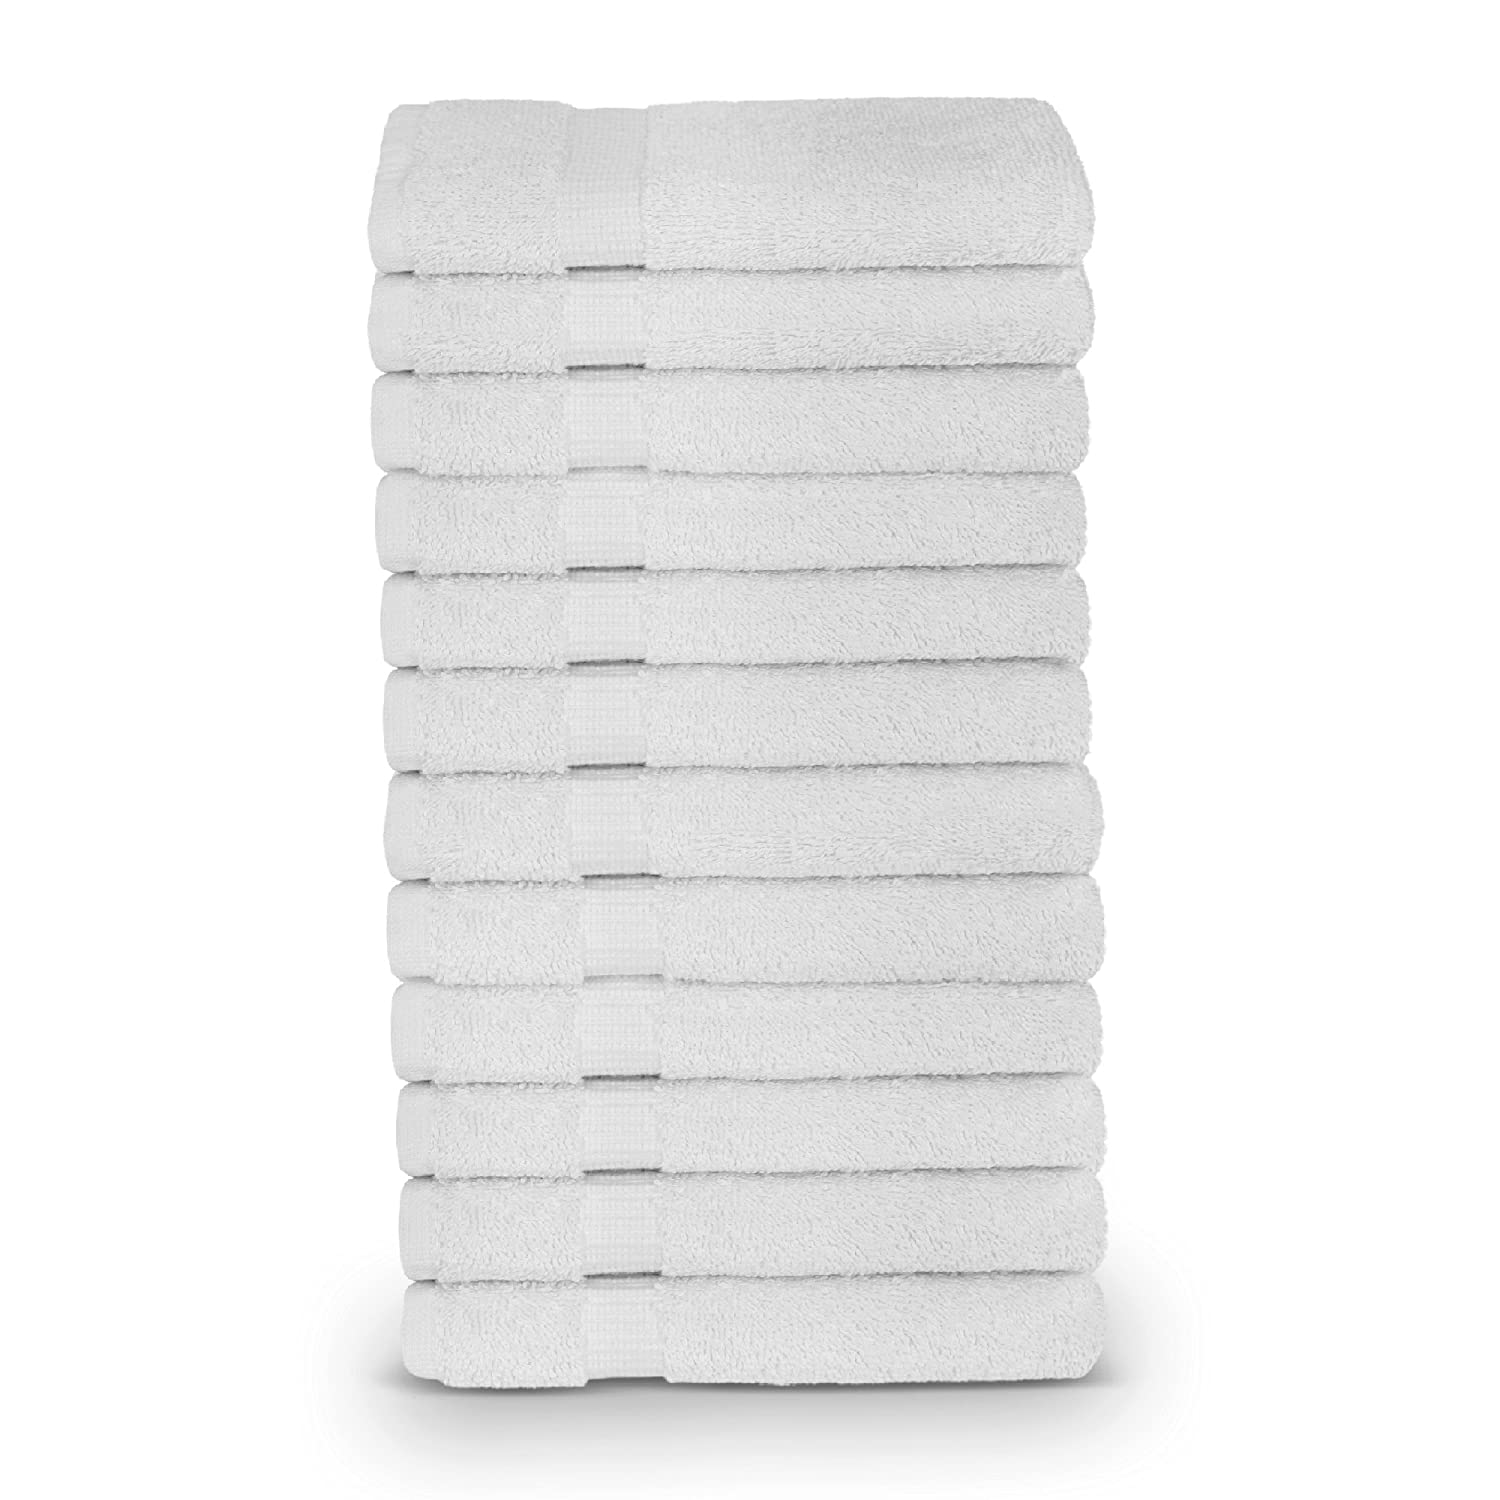 12-Piece Turkish Cotton Dobby Border Eco Friendly Face Towel/Washcloths Set by Turkuoise Turkish Towel (White) TURKUOISE TURKISH TOWEL TRK-WSH-DB-12PCK-FBA-WHT